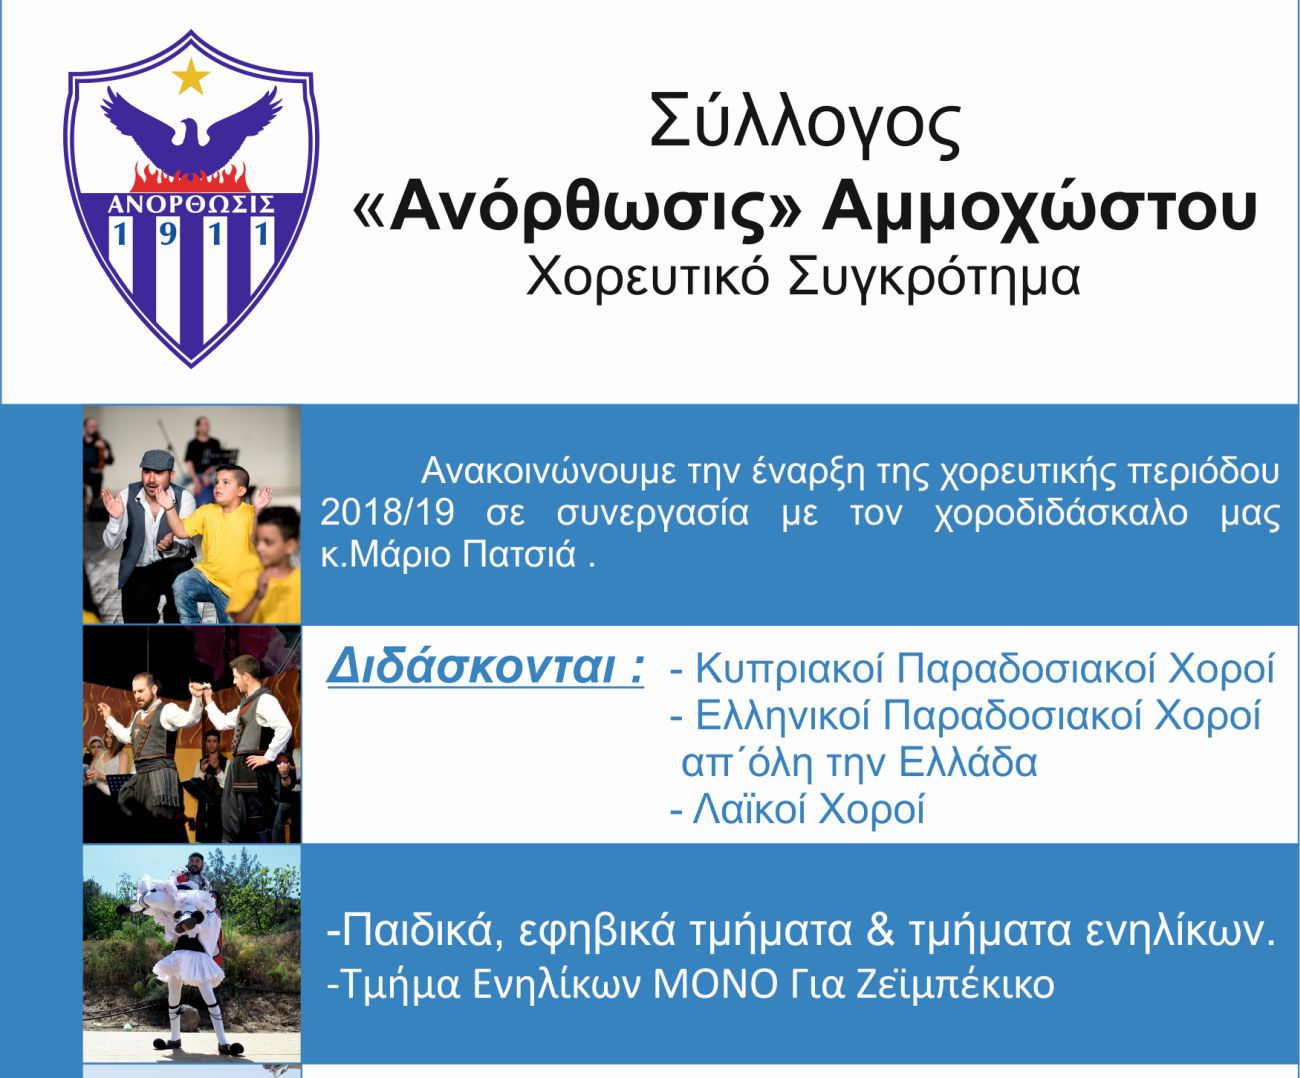 ANORTHOSIS FLYER 22